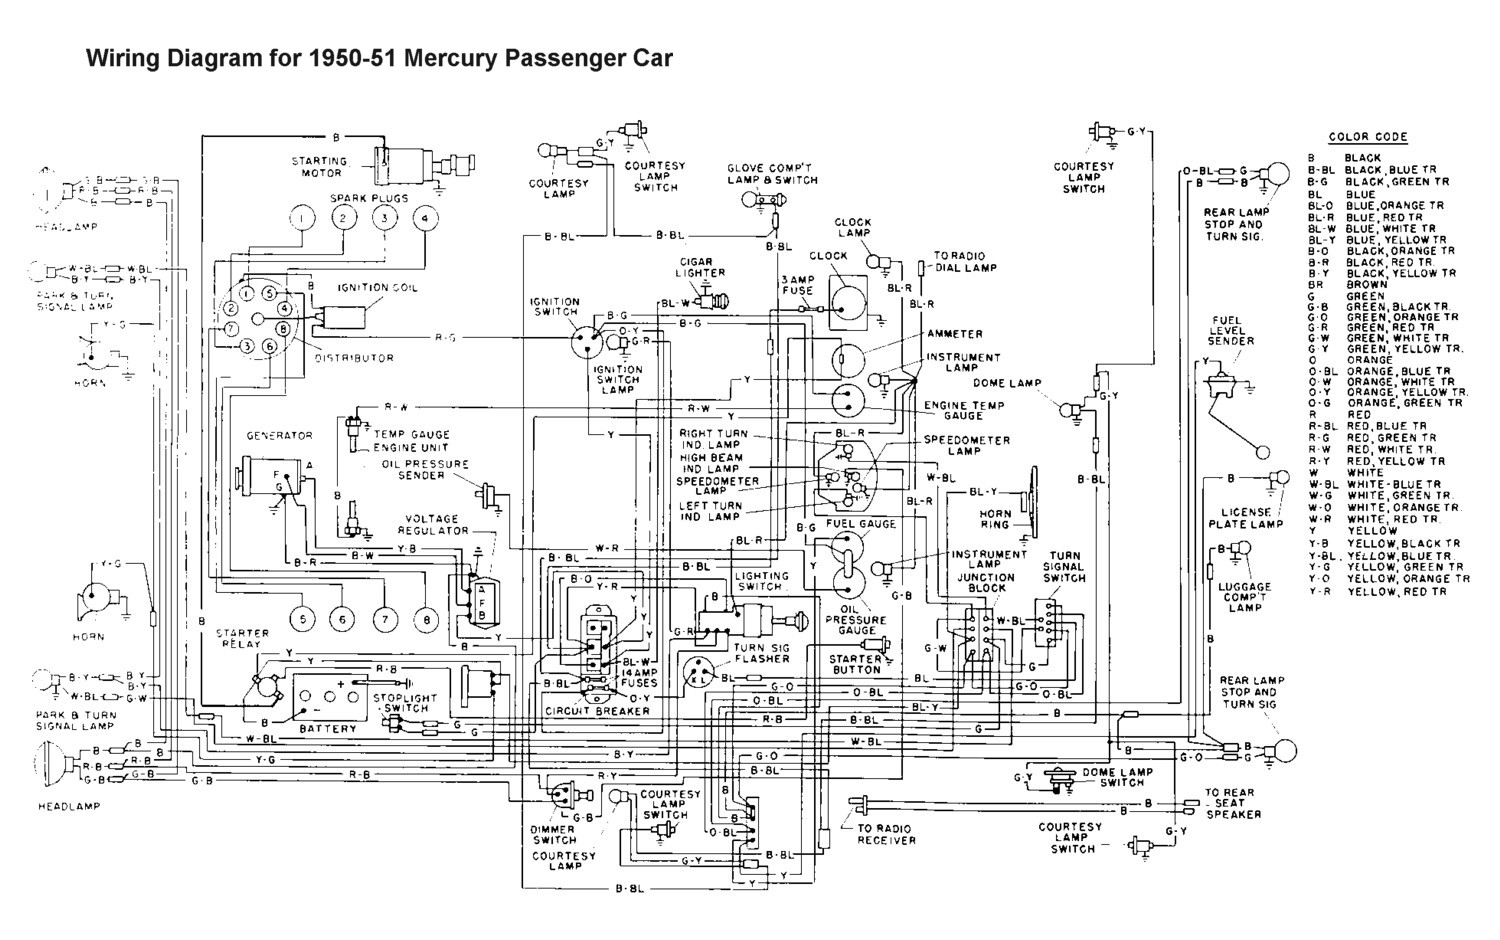 1972 Tr6 Wiring Diagram - Wiring Library • Woofit.co